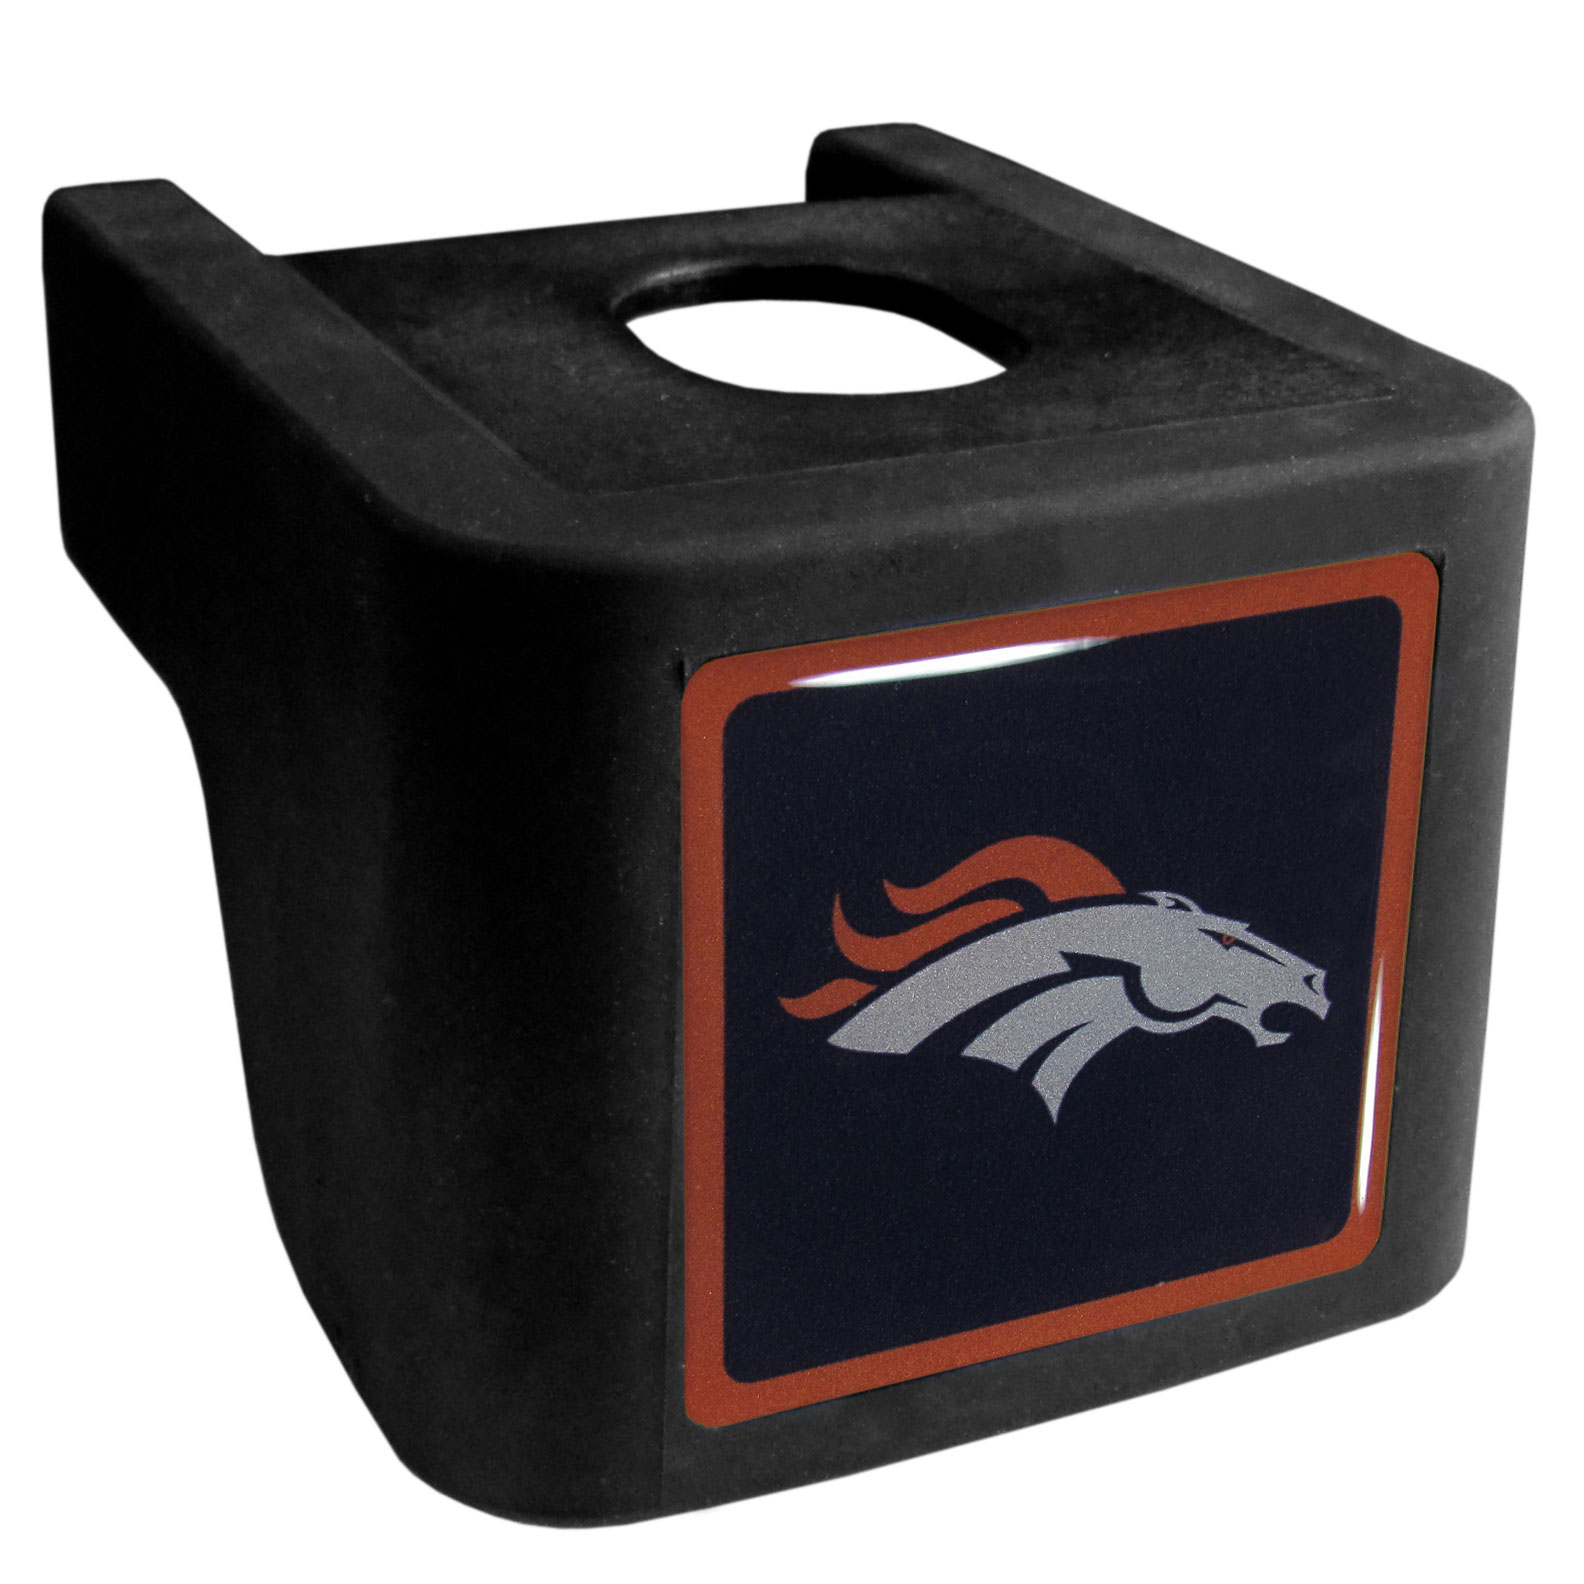 Denver Broncos Shin Shield Hitch Cover - This unique hitch cover features a large Denver Broncos logo. If you have ever hooked up a trailer or boat your have probably smashed your shins on the ball hitch a few times. This revolutionary shin shield hitch cover provides your much abused shins with the protection they deserve! The tough rubber hitch is rated to work with Class V hitch receivers hauling up to 17,000 gross trailer weight and 1,700 tongue weight allowing you to leave it on while hauling.